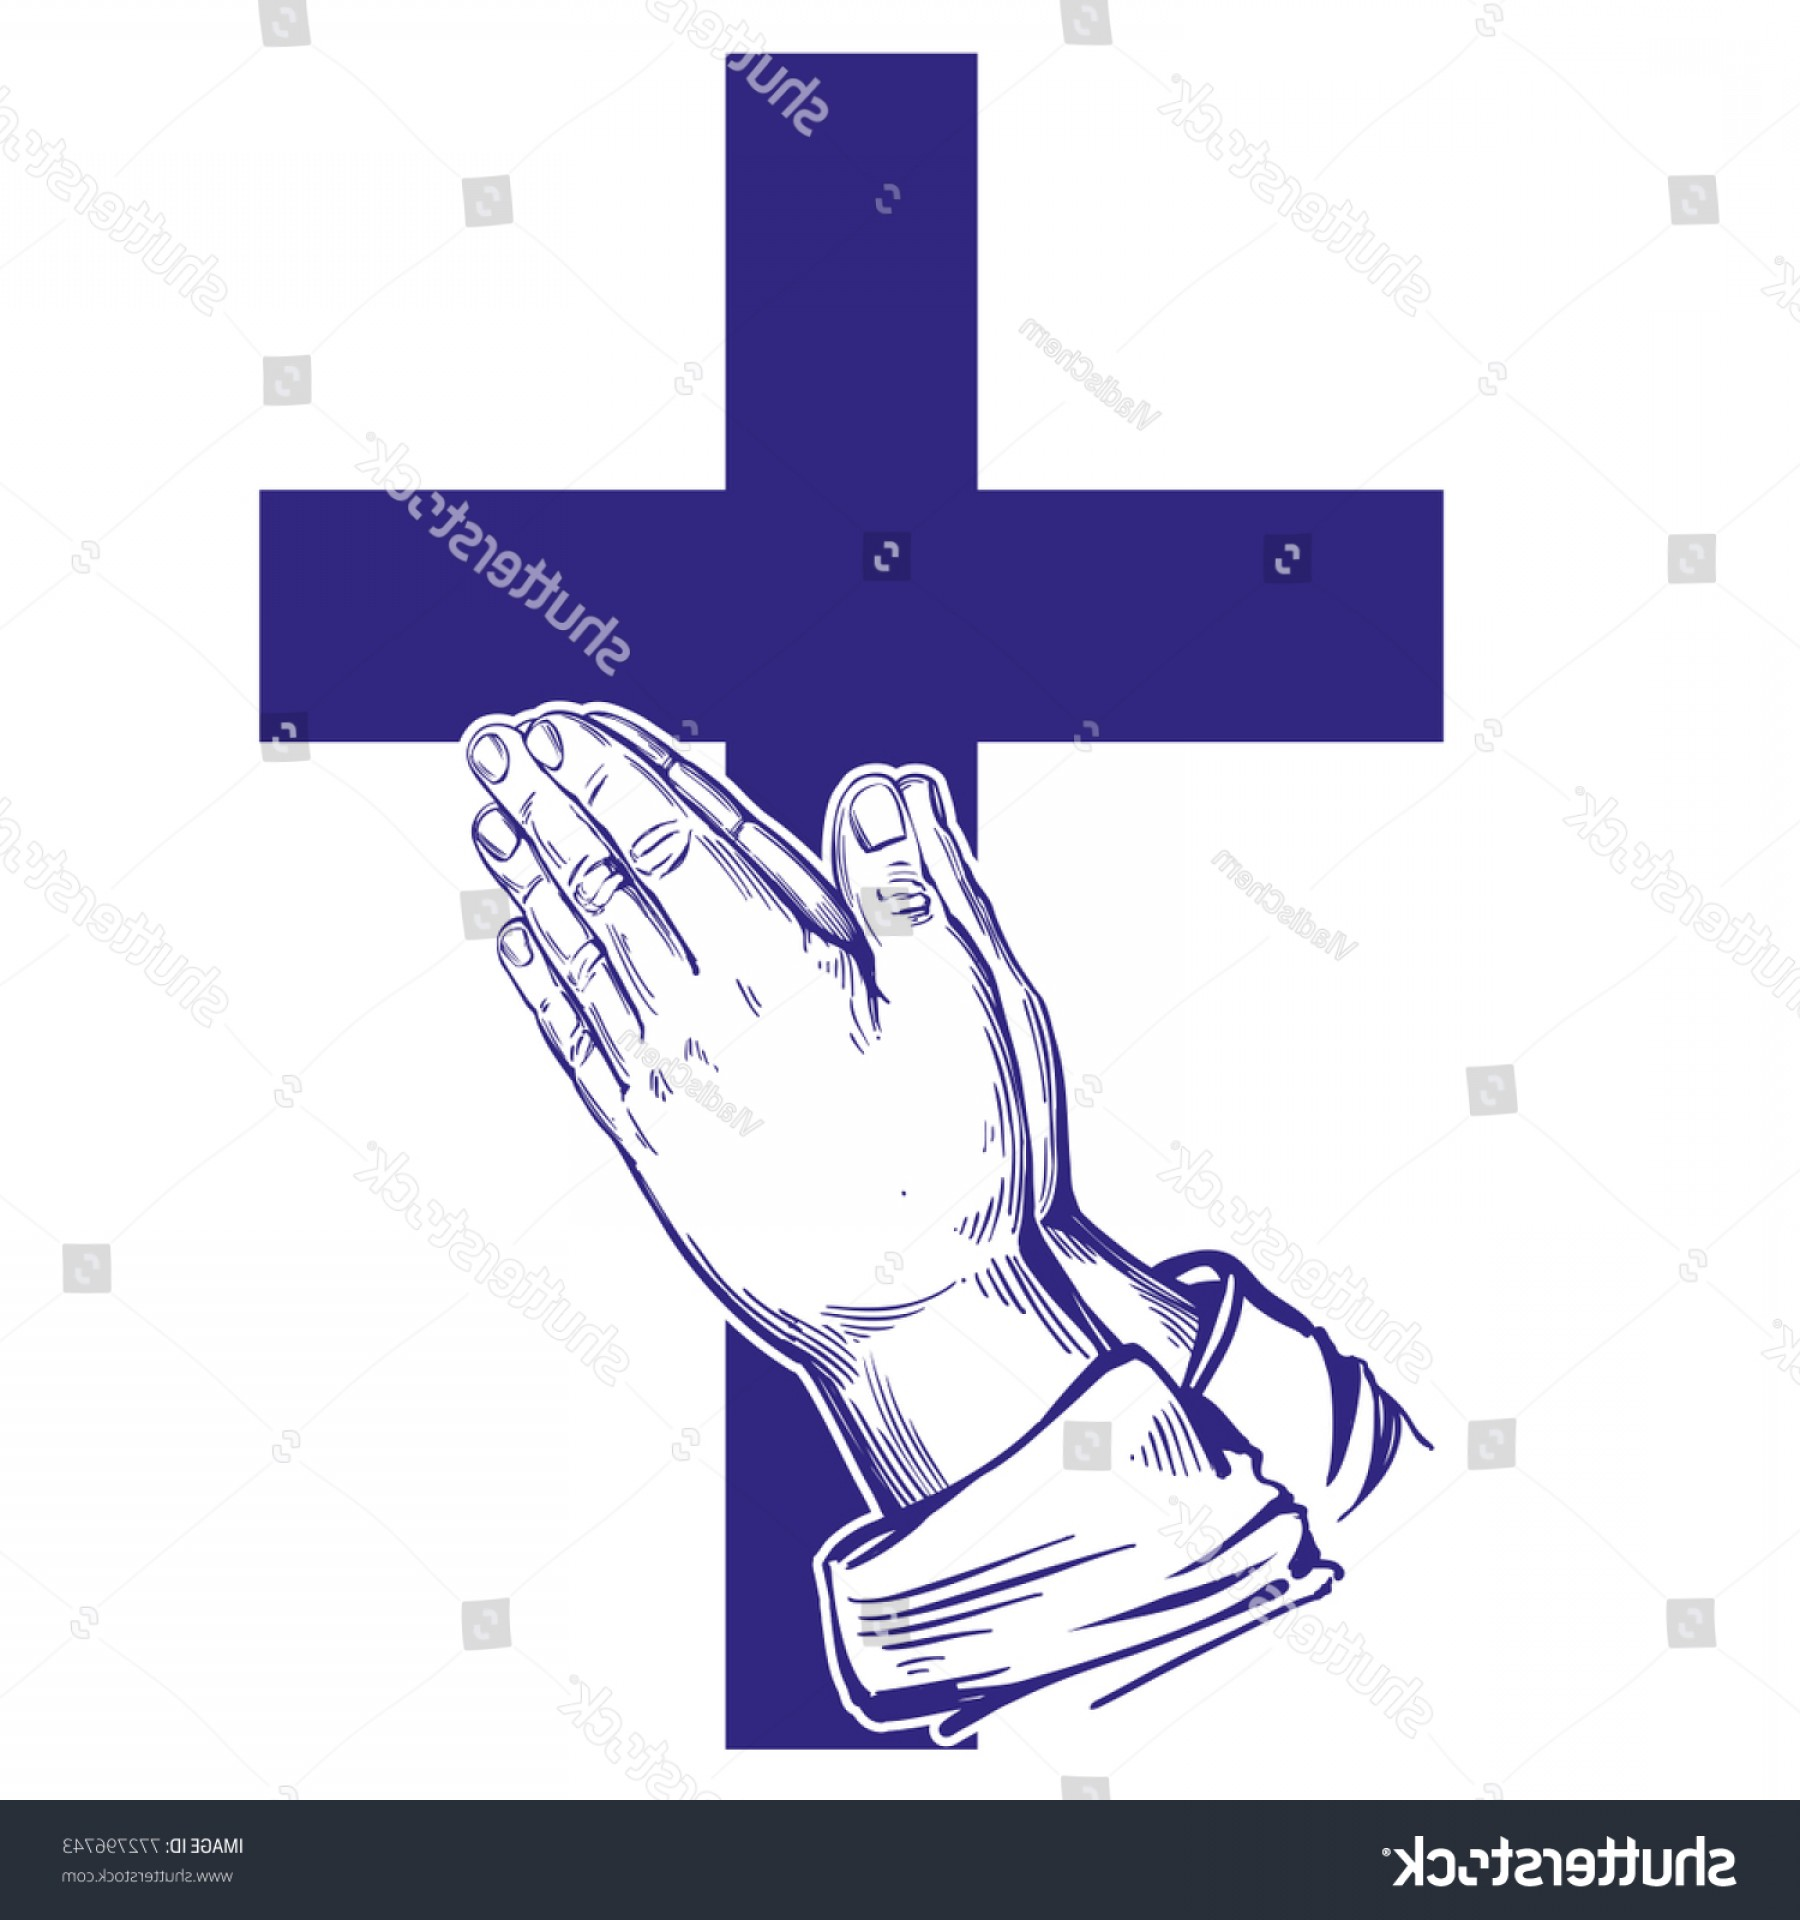 Praying Hands Vectors Shutterstock: Praying Hands Cross Symbol Christianity Hand